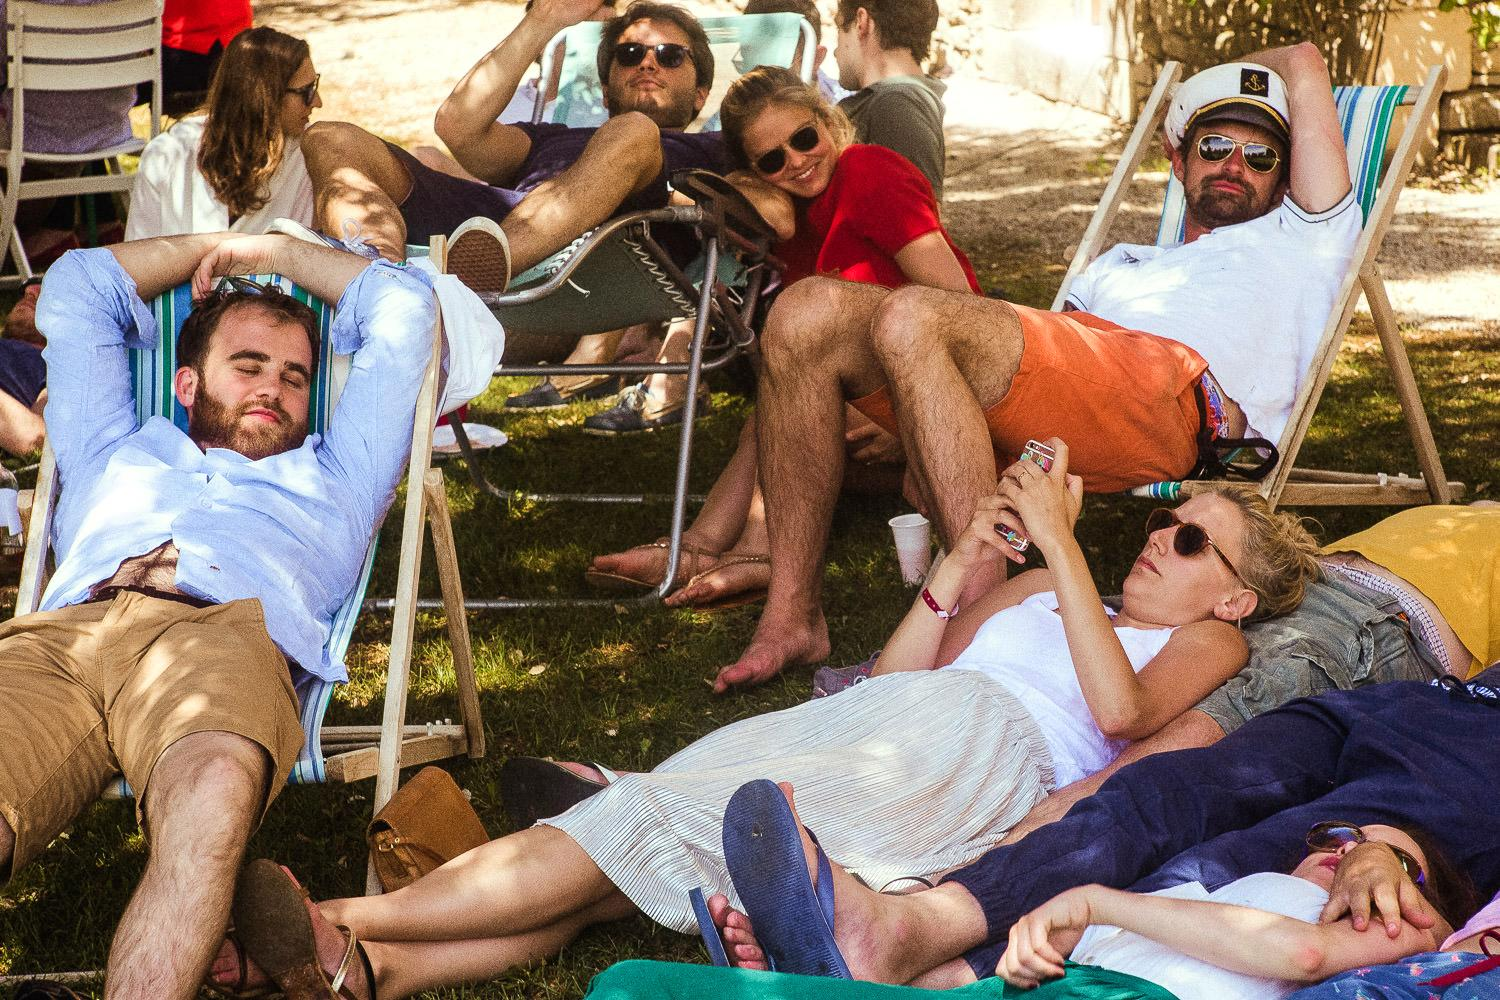 Guests sleep and relax at a French pool party